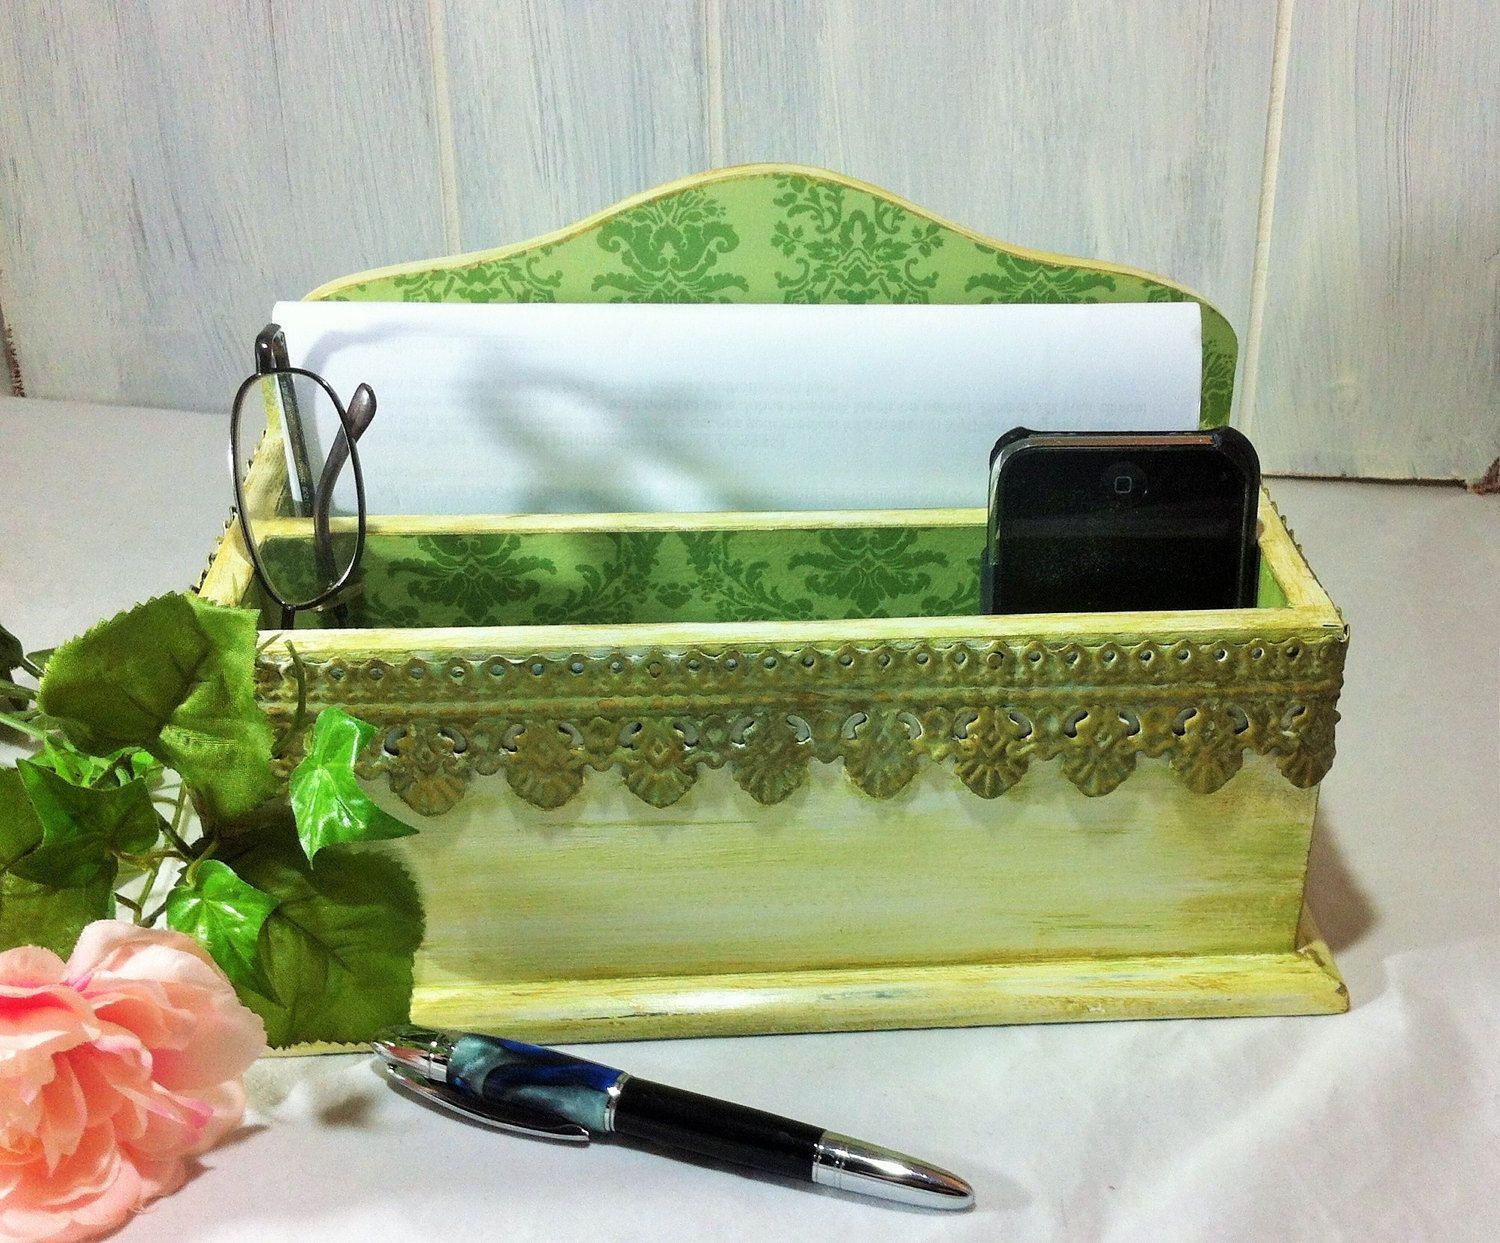 damask office accessories. Vintage Green Mail Holder, Decorative Damask Desk Accessory Organization, White Home Office Top Accessory, Cosmetics Organizer $28.00 By Accessories I